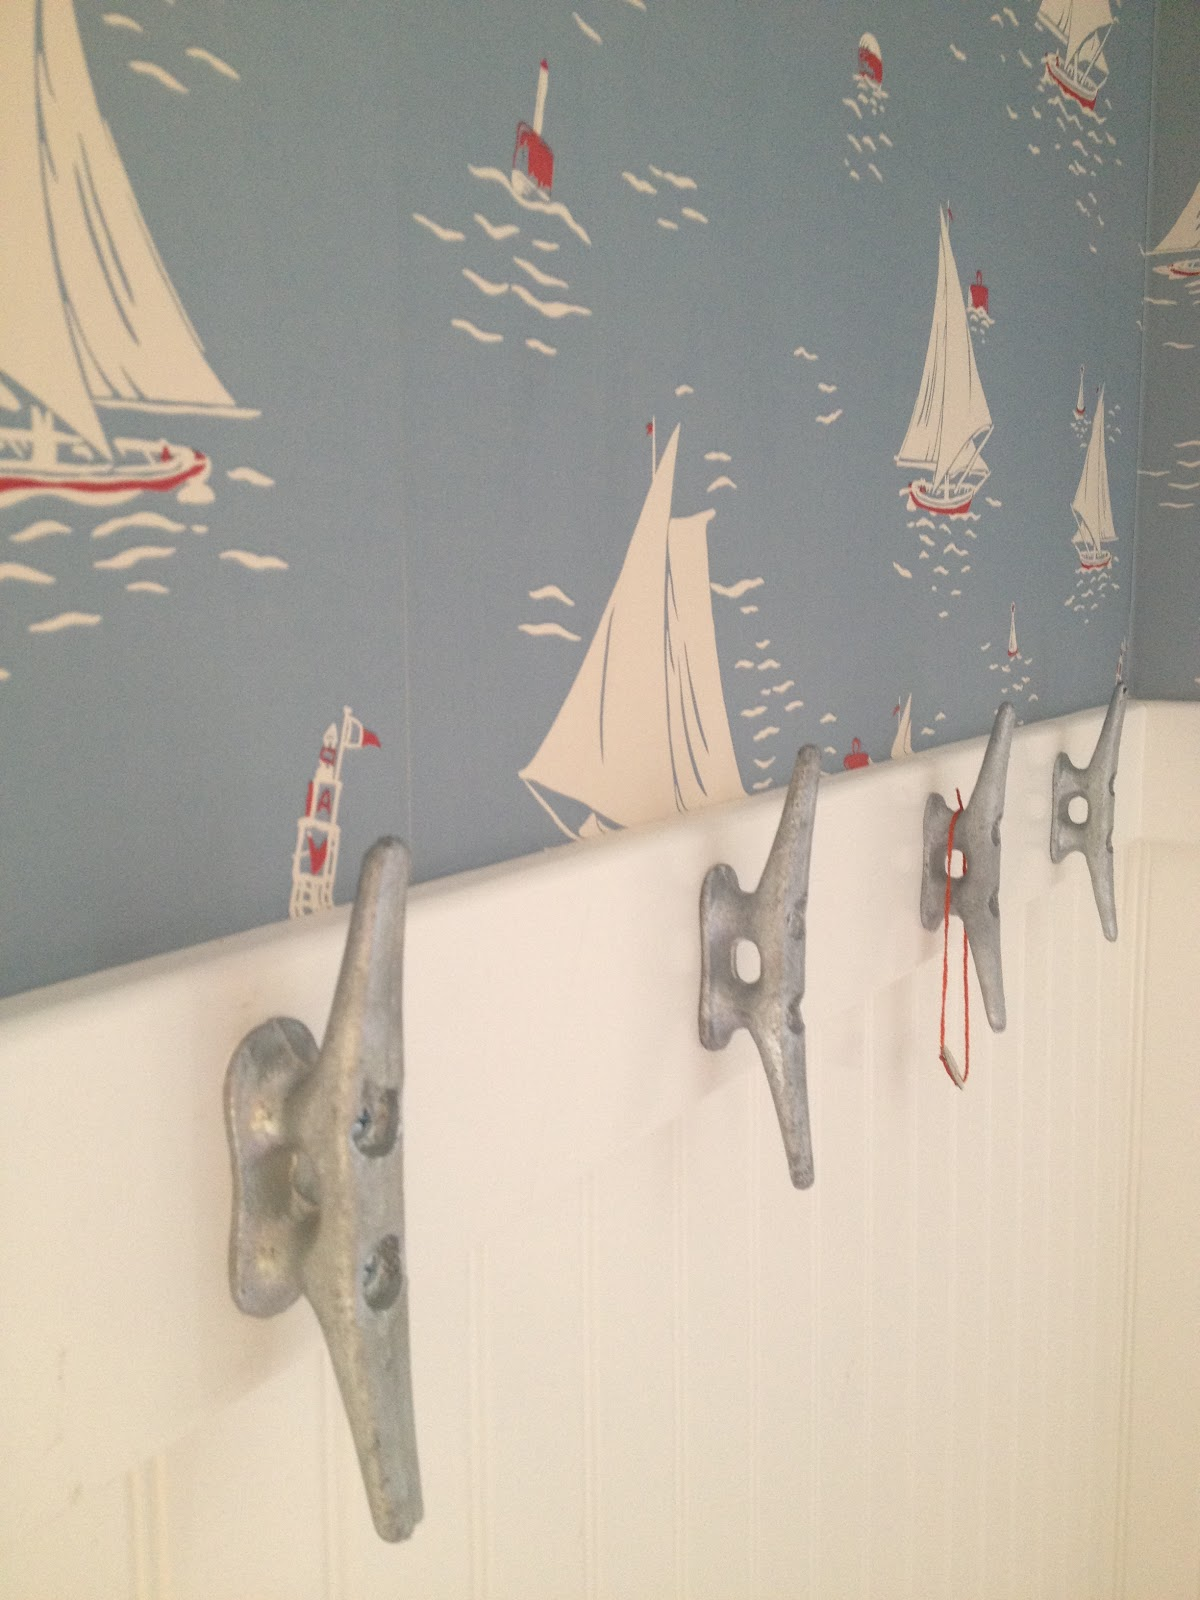 This Old Coconut Grove: Cabana Bathroom Wallpaper & Boat